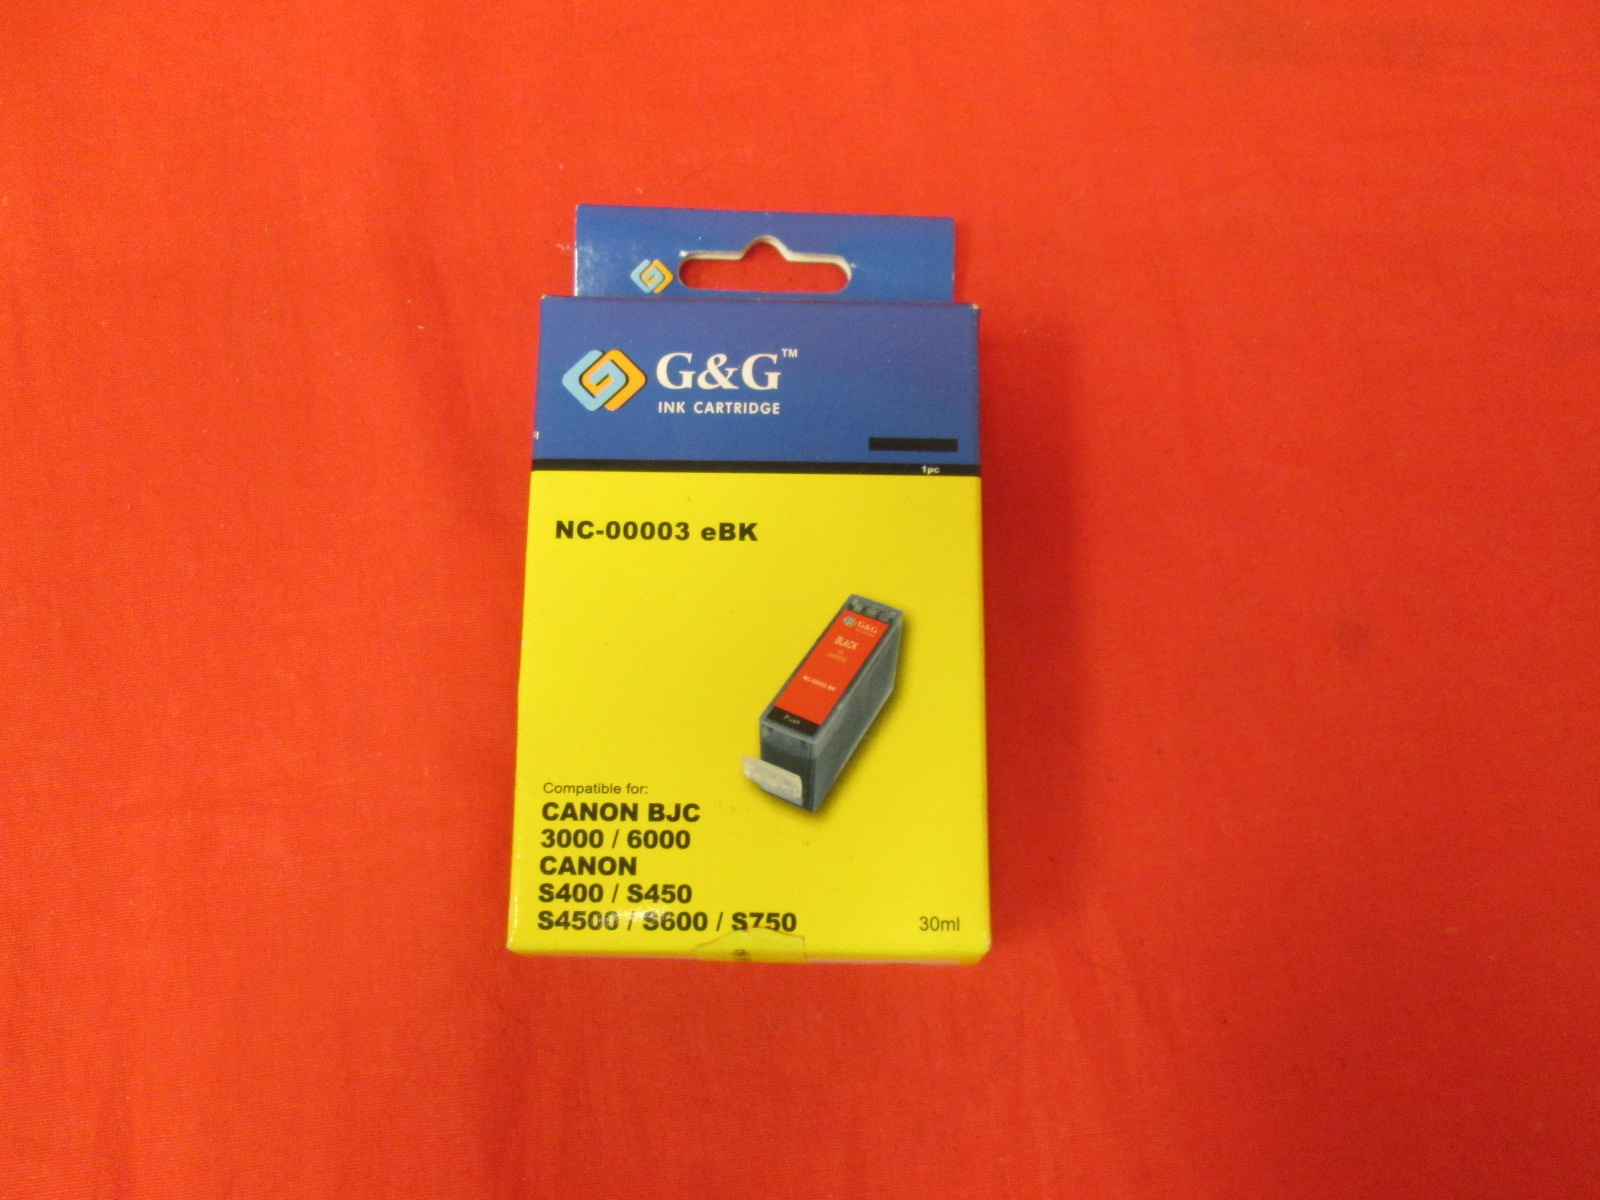 G&G Ink Cartridge NC-00003 Black Ink For Canon 3000 6000 S400 S450 S45